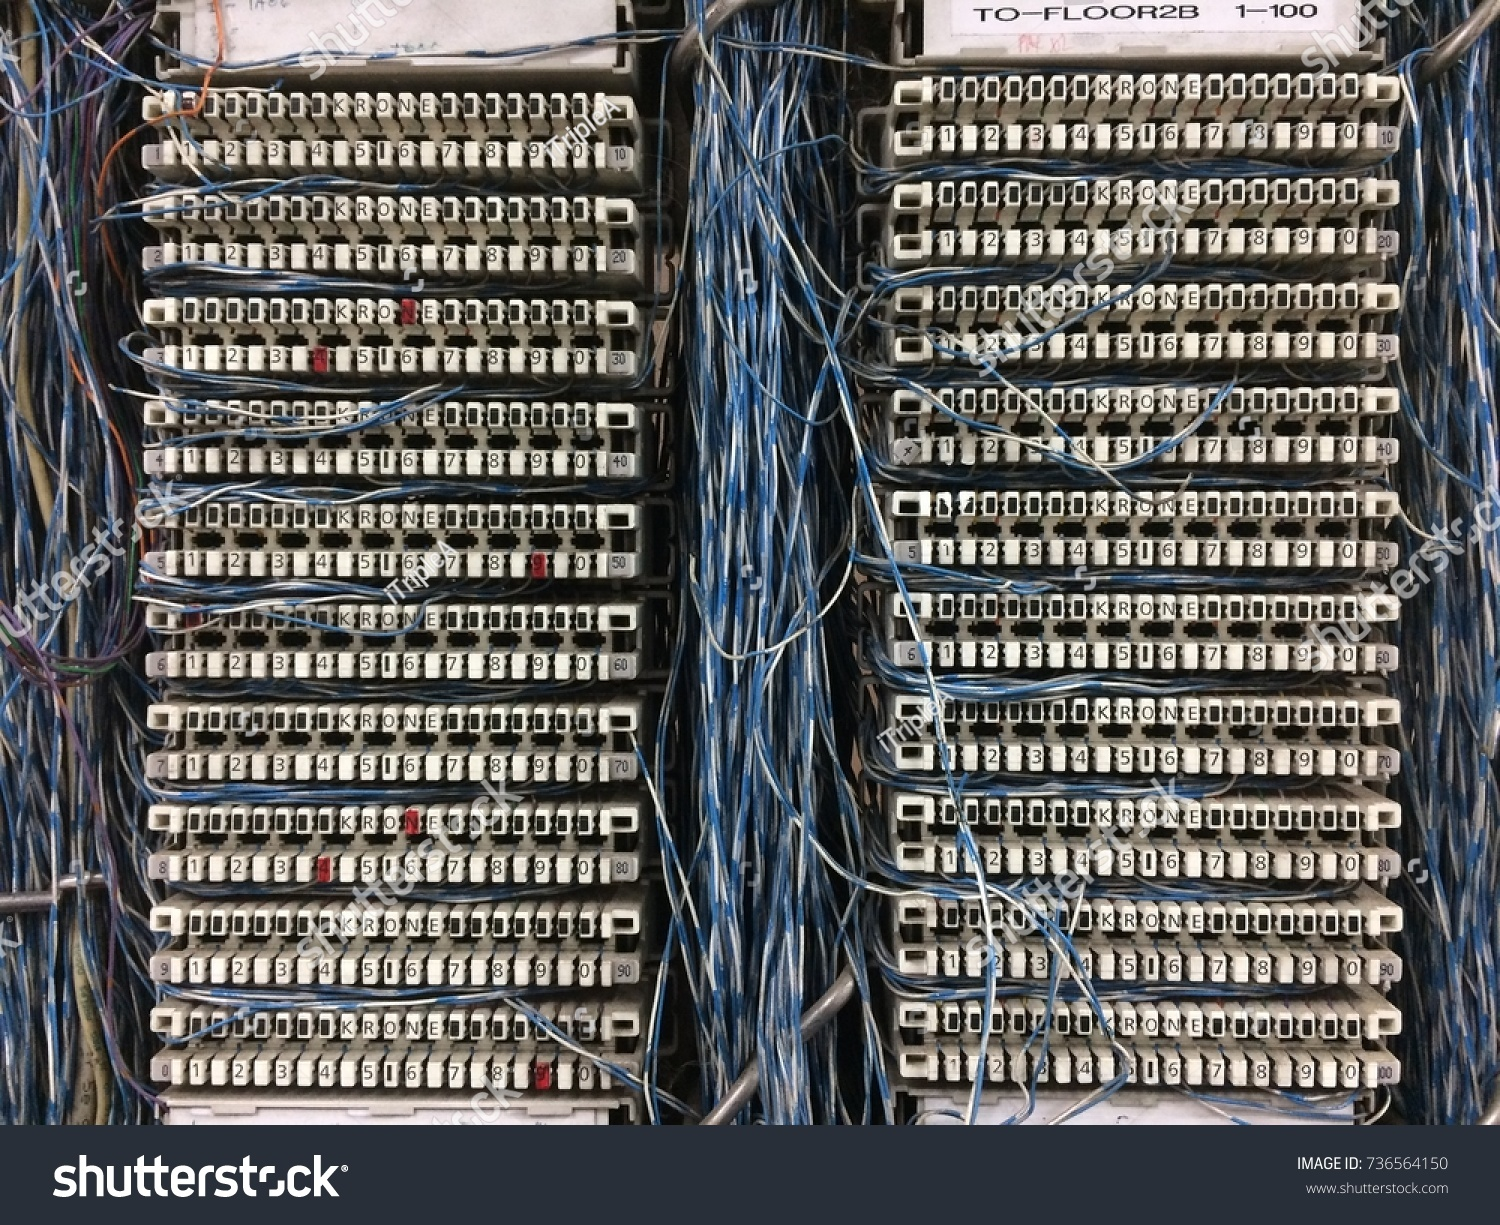 Awe Inspiring Old Telephone Wiring Cable System Providing Stock Photo Edit Now Wiring 101 Capemaxxcnl